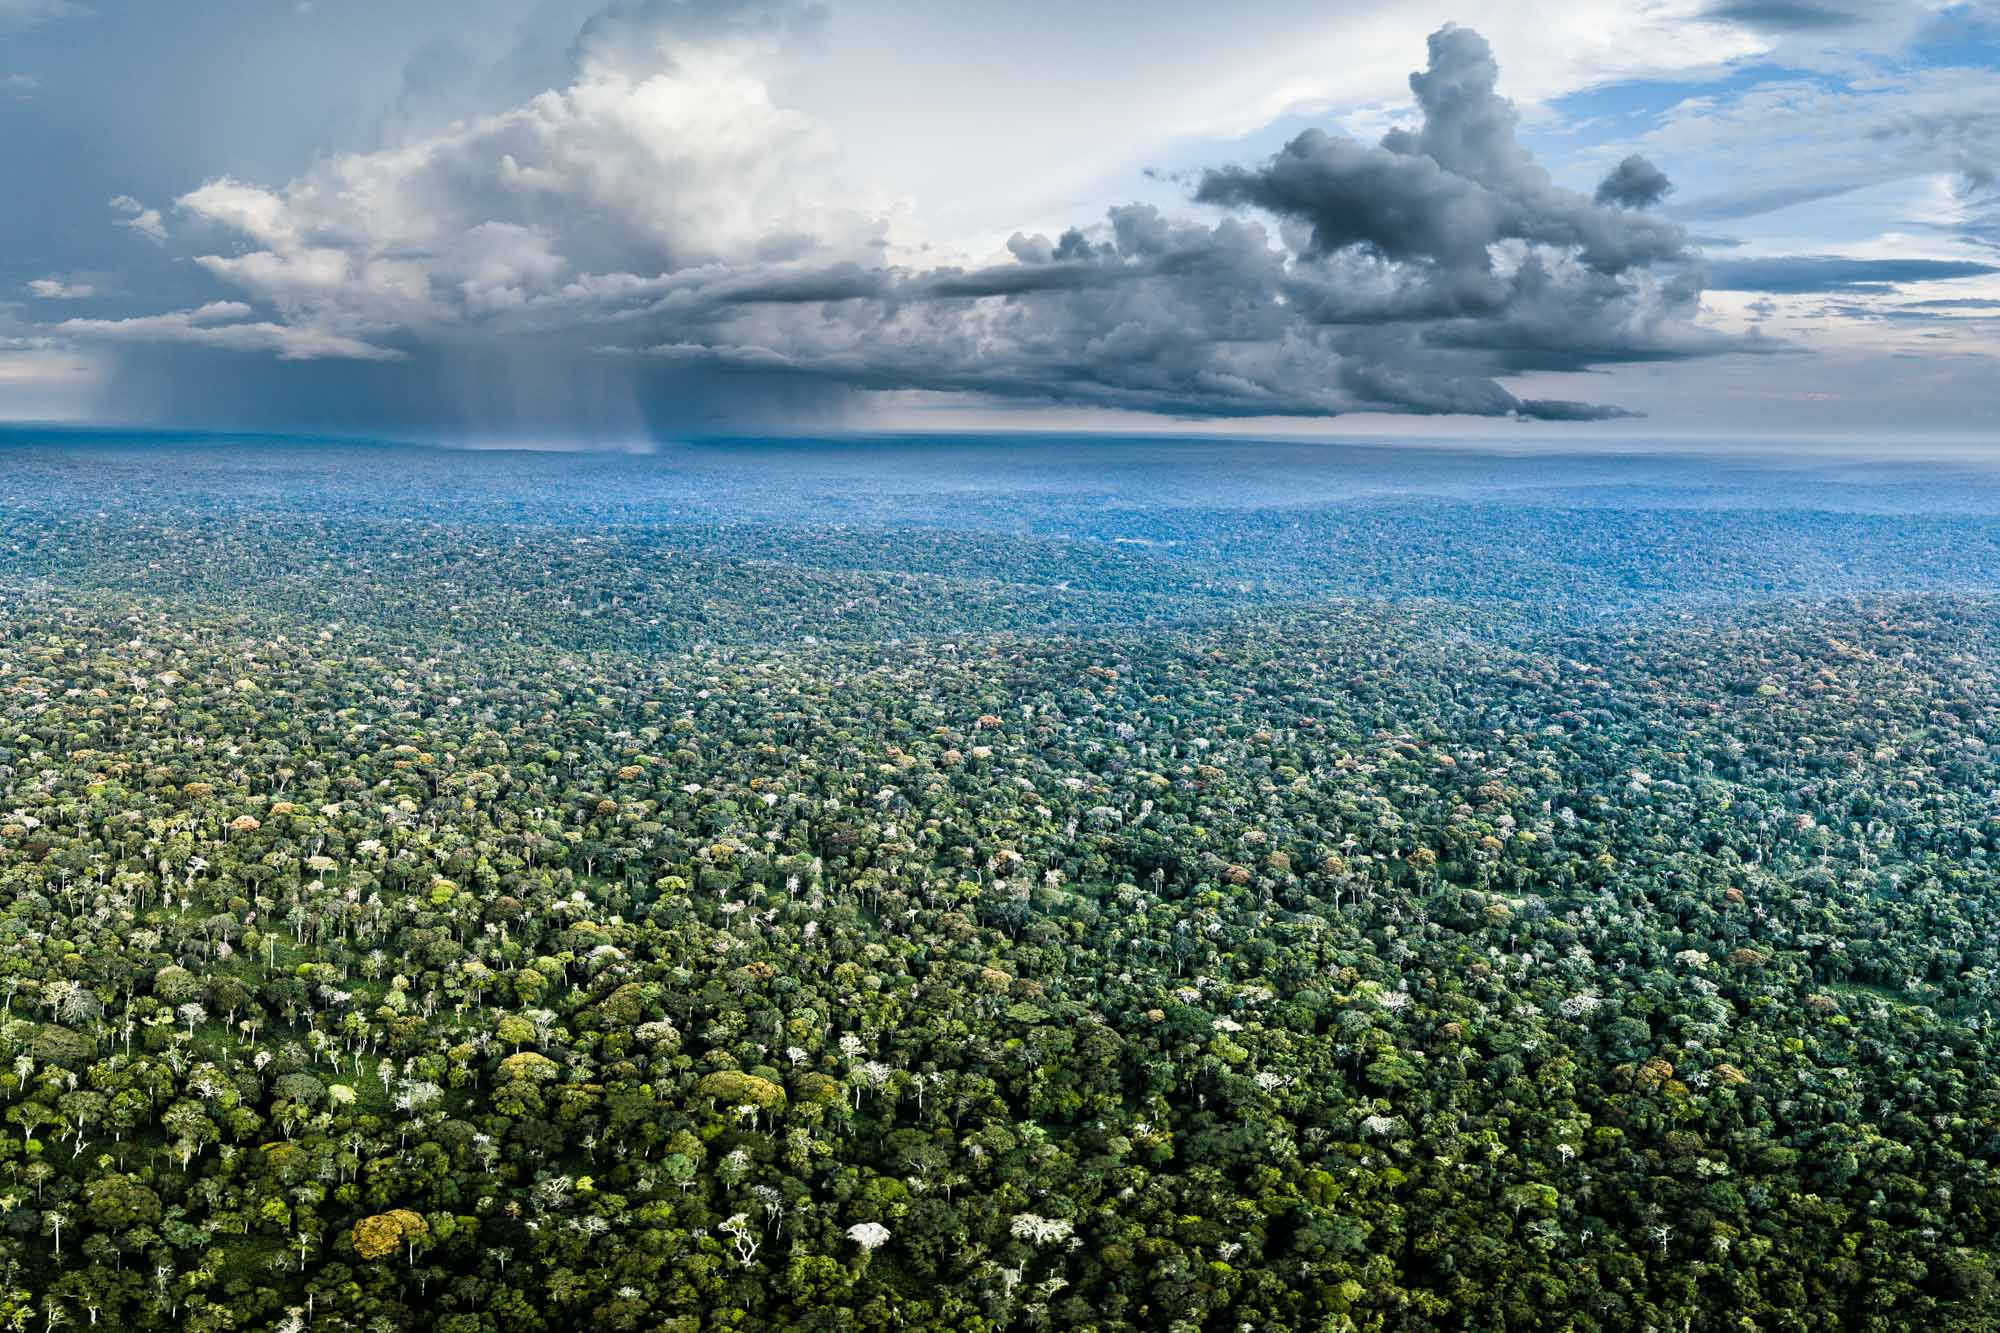 The remarkable Odzala-Kokoua National Park in Republic of Congo, one of many protected areas which Paul Telfer has helped establish or promote.